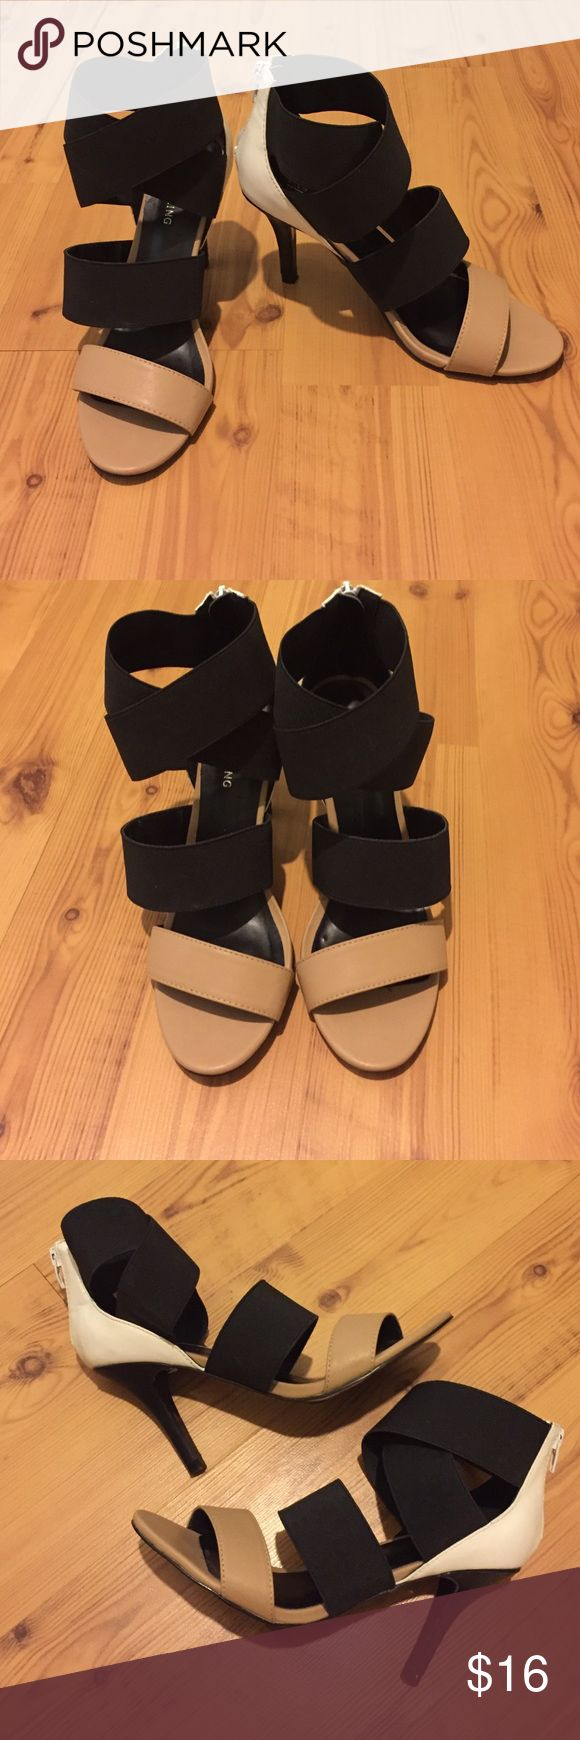 Call It Spring tan, black, and white strappy heels Tan, black, and white strappy Call It Spring heels. Worn once for graduation. Comfy and stylish. Make an offer! Call It Spring Shoes Heels